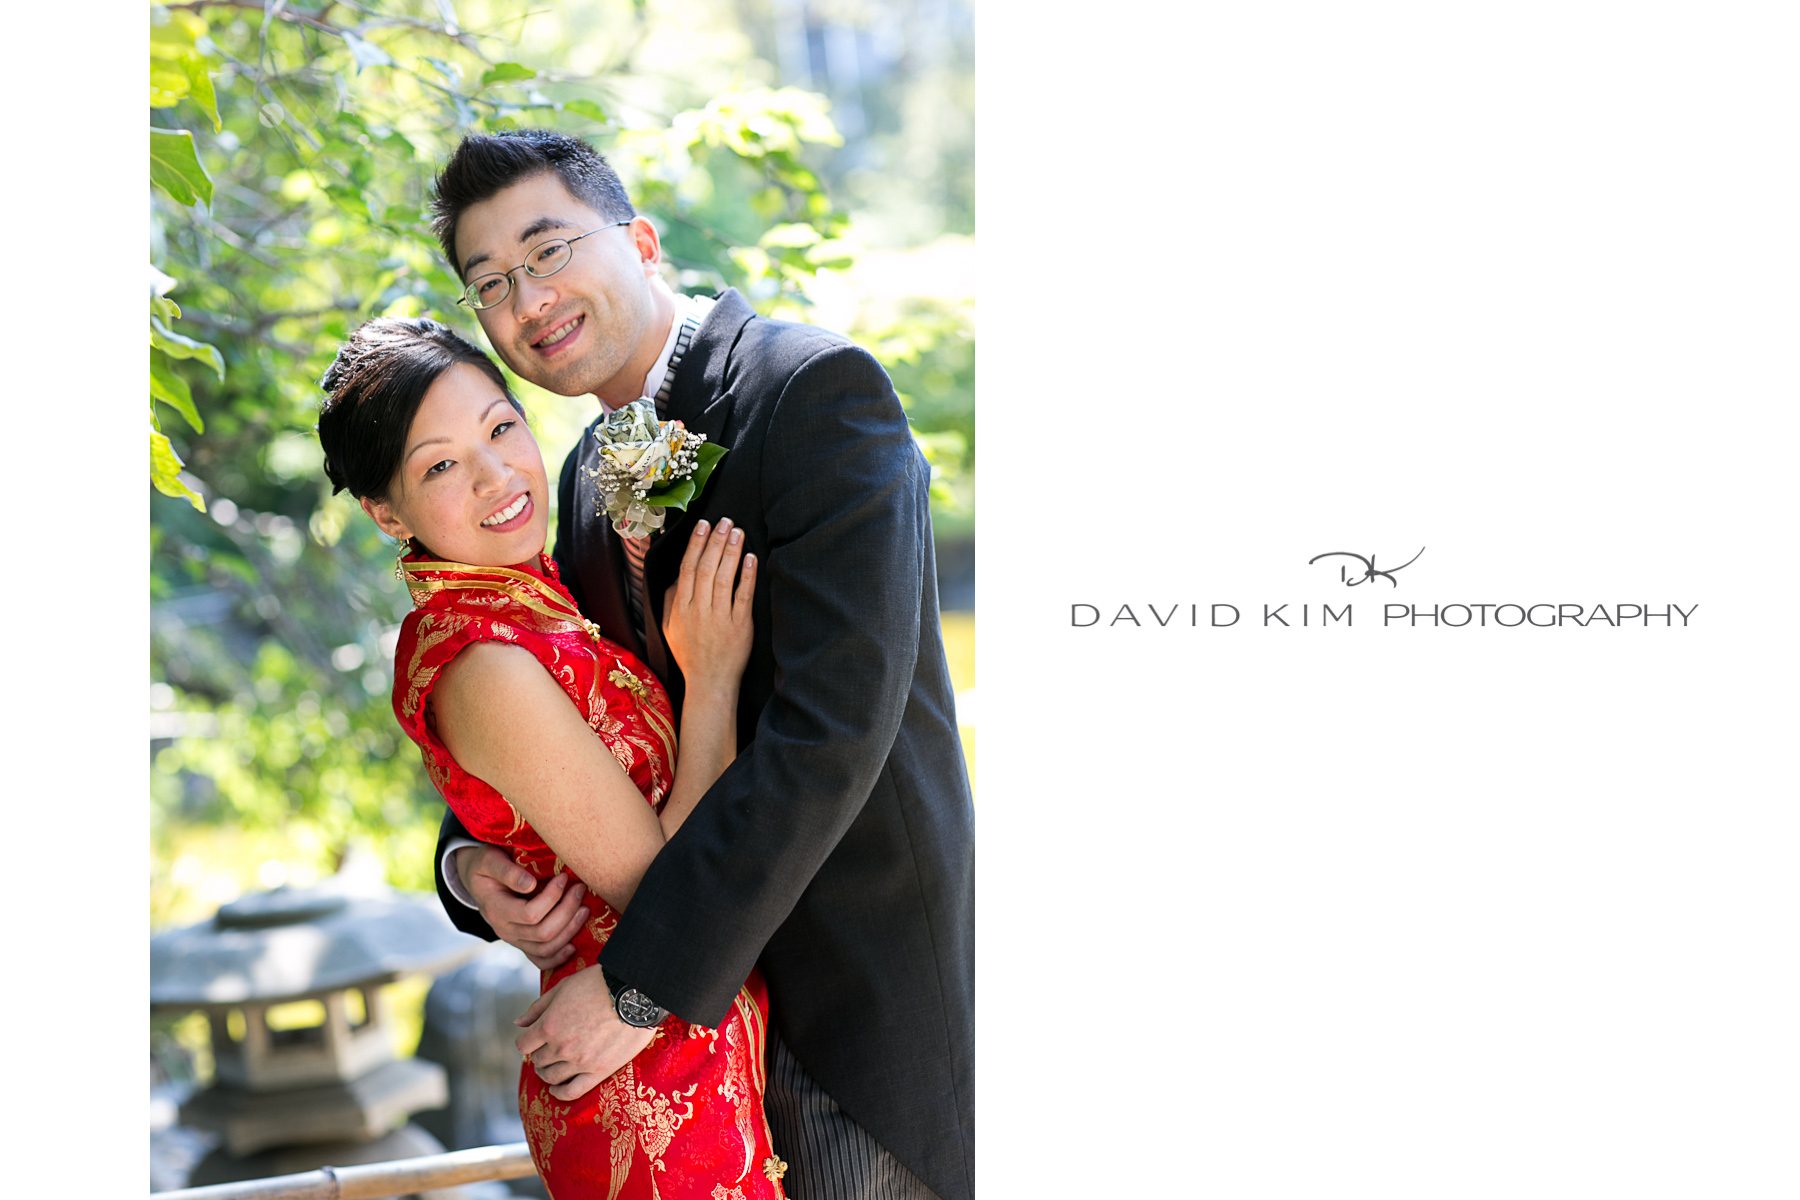 Joanna-Dave-001-1-dk-photography-san-francisco-wedding.jpg